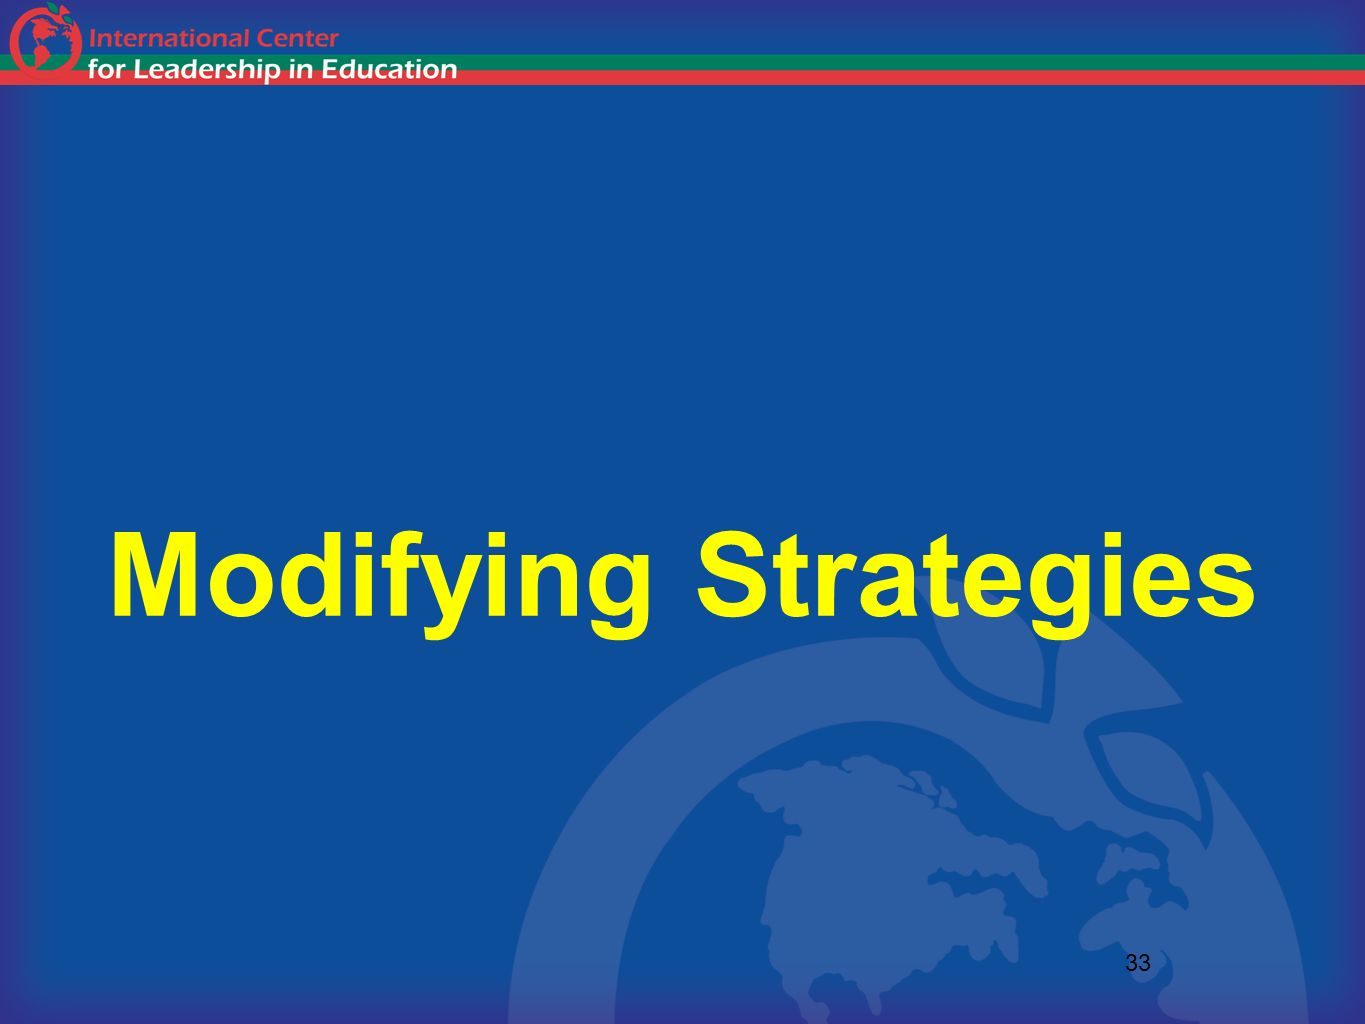 Modifying Strategies